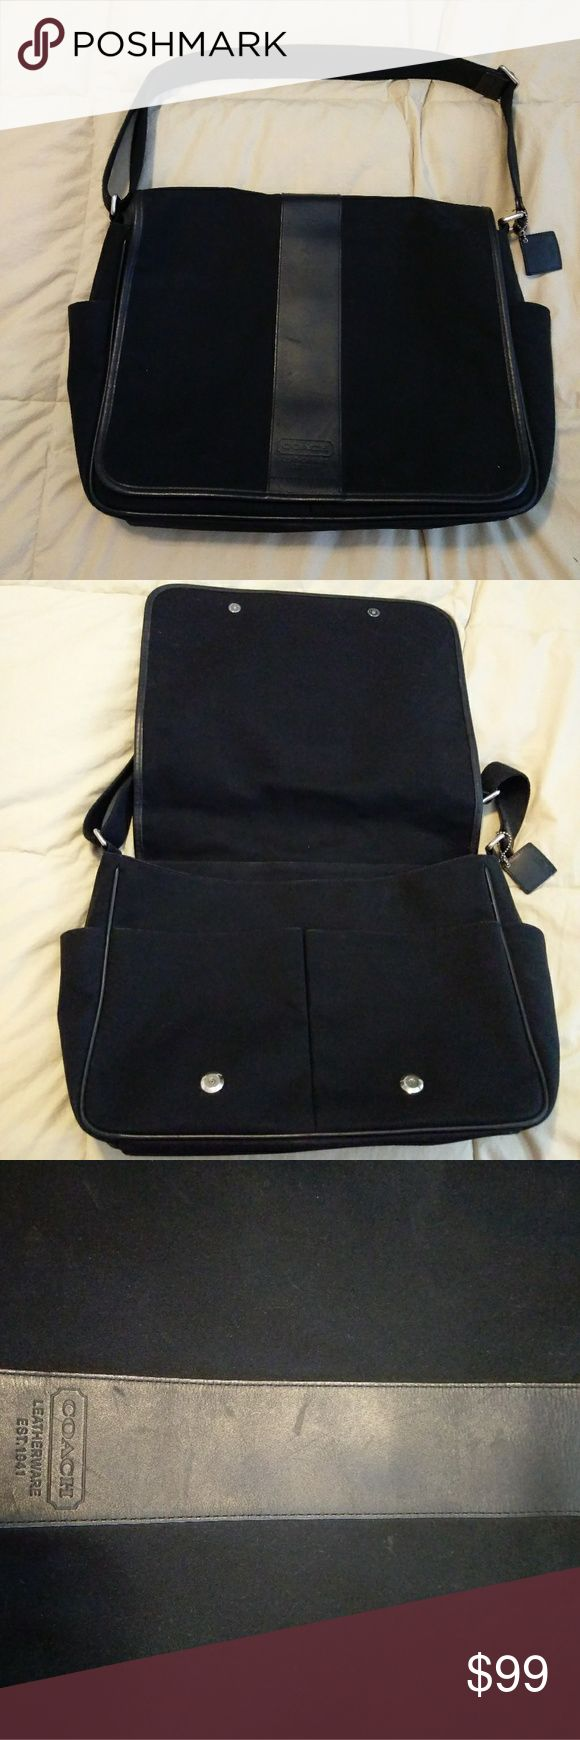 Coach messenger bag Great condition coach bag, can be used as a laptop bag, diaper bag, man bag. Small scratches on leather strip. Overall a great bag. Coach Bags